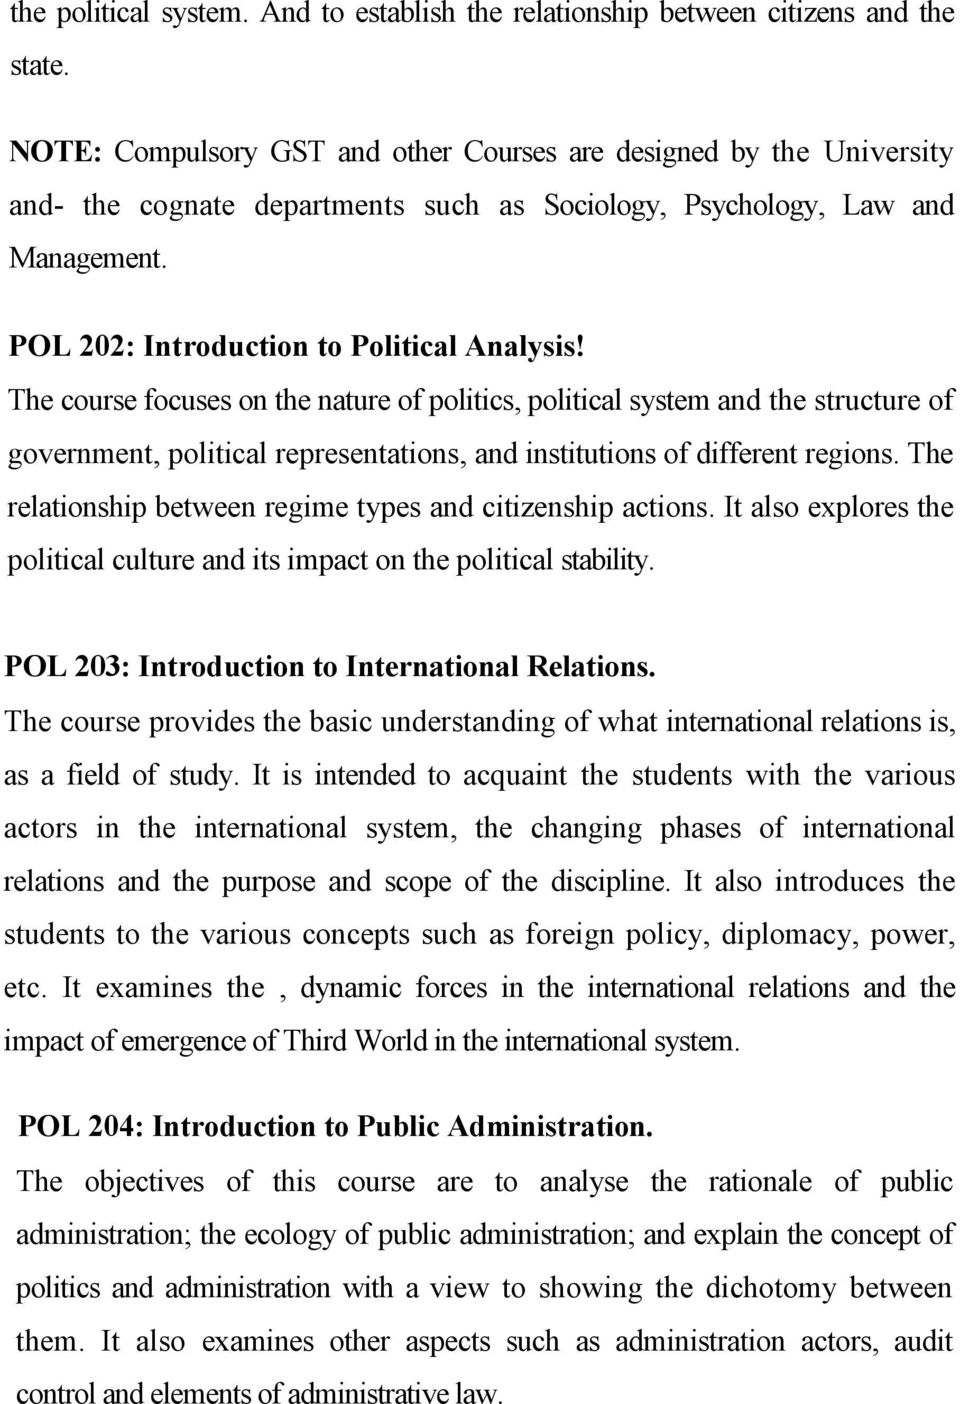 The course focuses on the nature of politics, political system and the structure of government, political representations, and institutions of different regions.